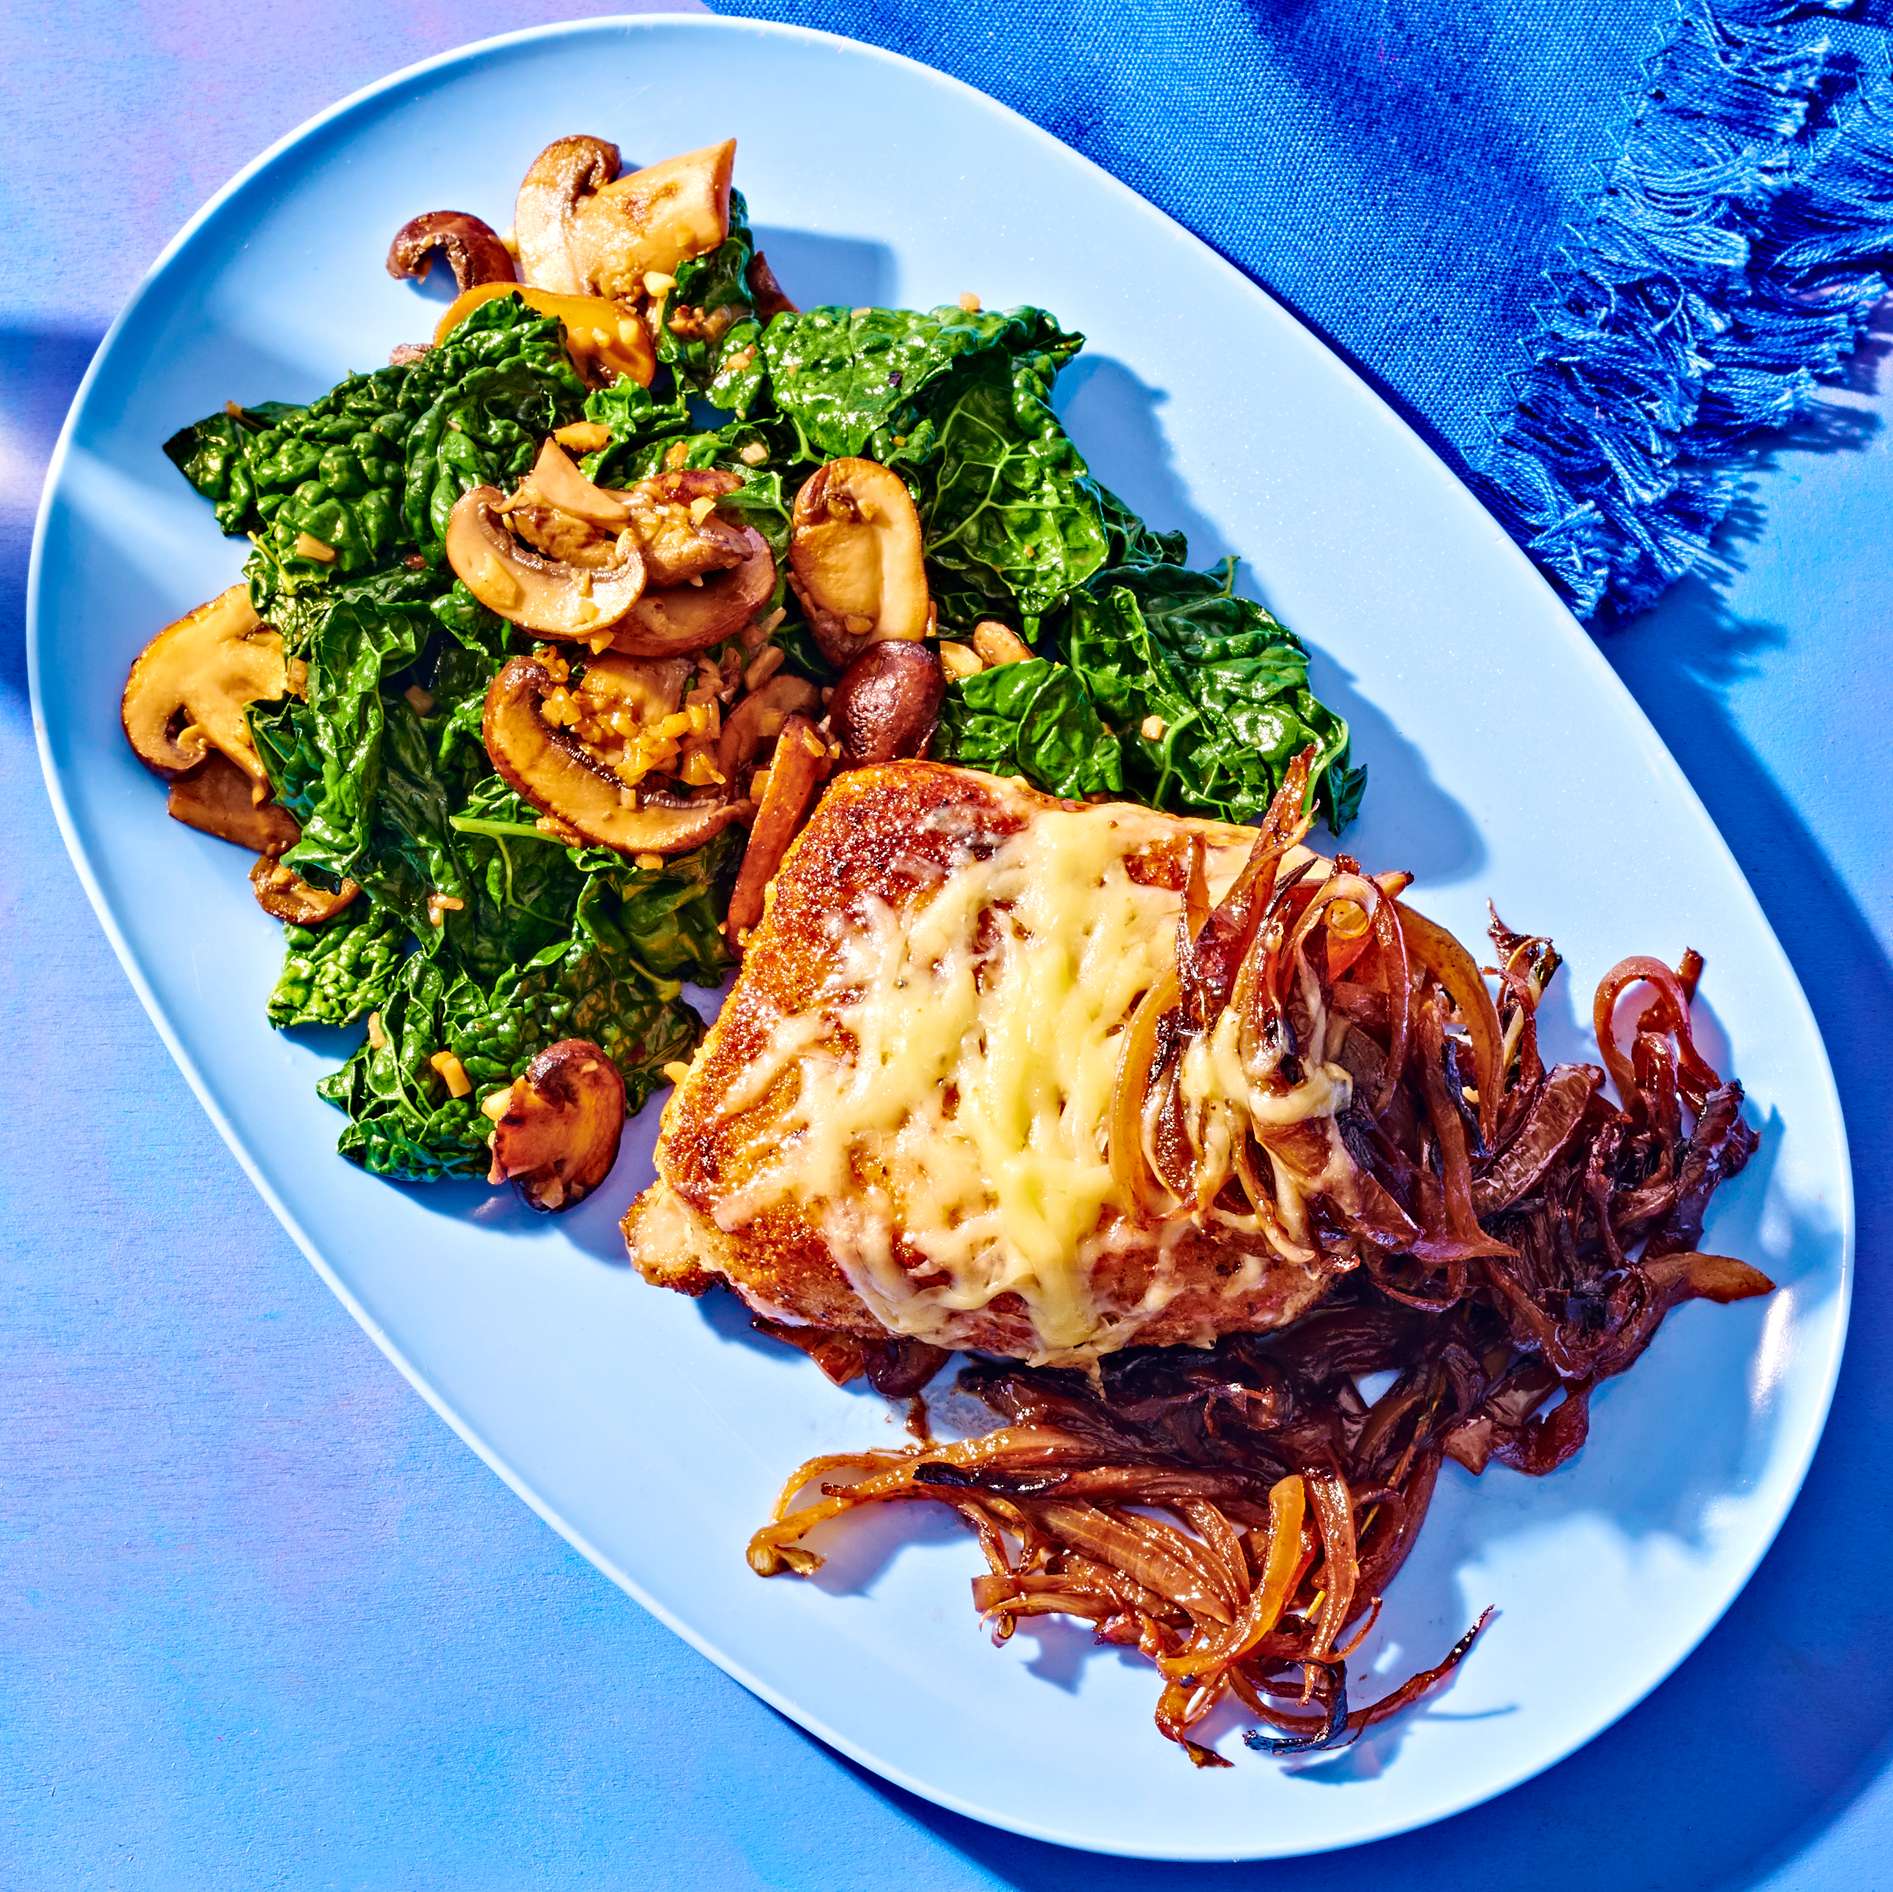 Cheesy Smothered Pork Chops with Garlicky Mushrooms & Kale